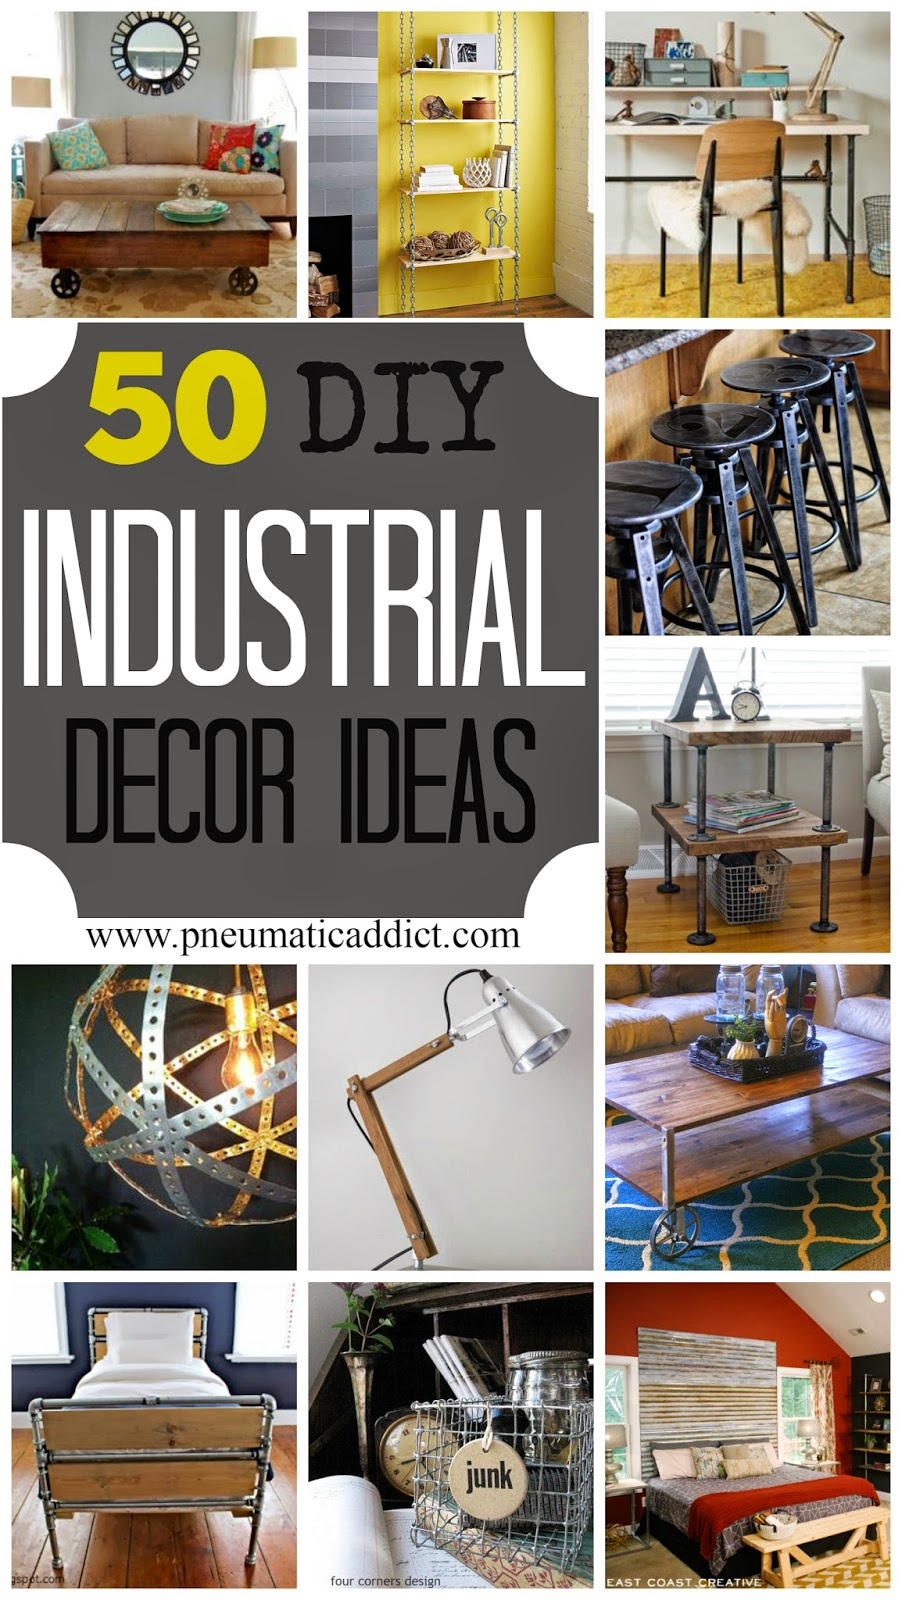 pneumatic addict : 50 diy industrial decor ideas